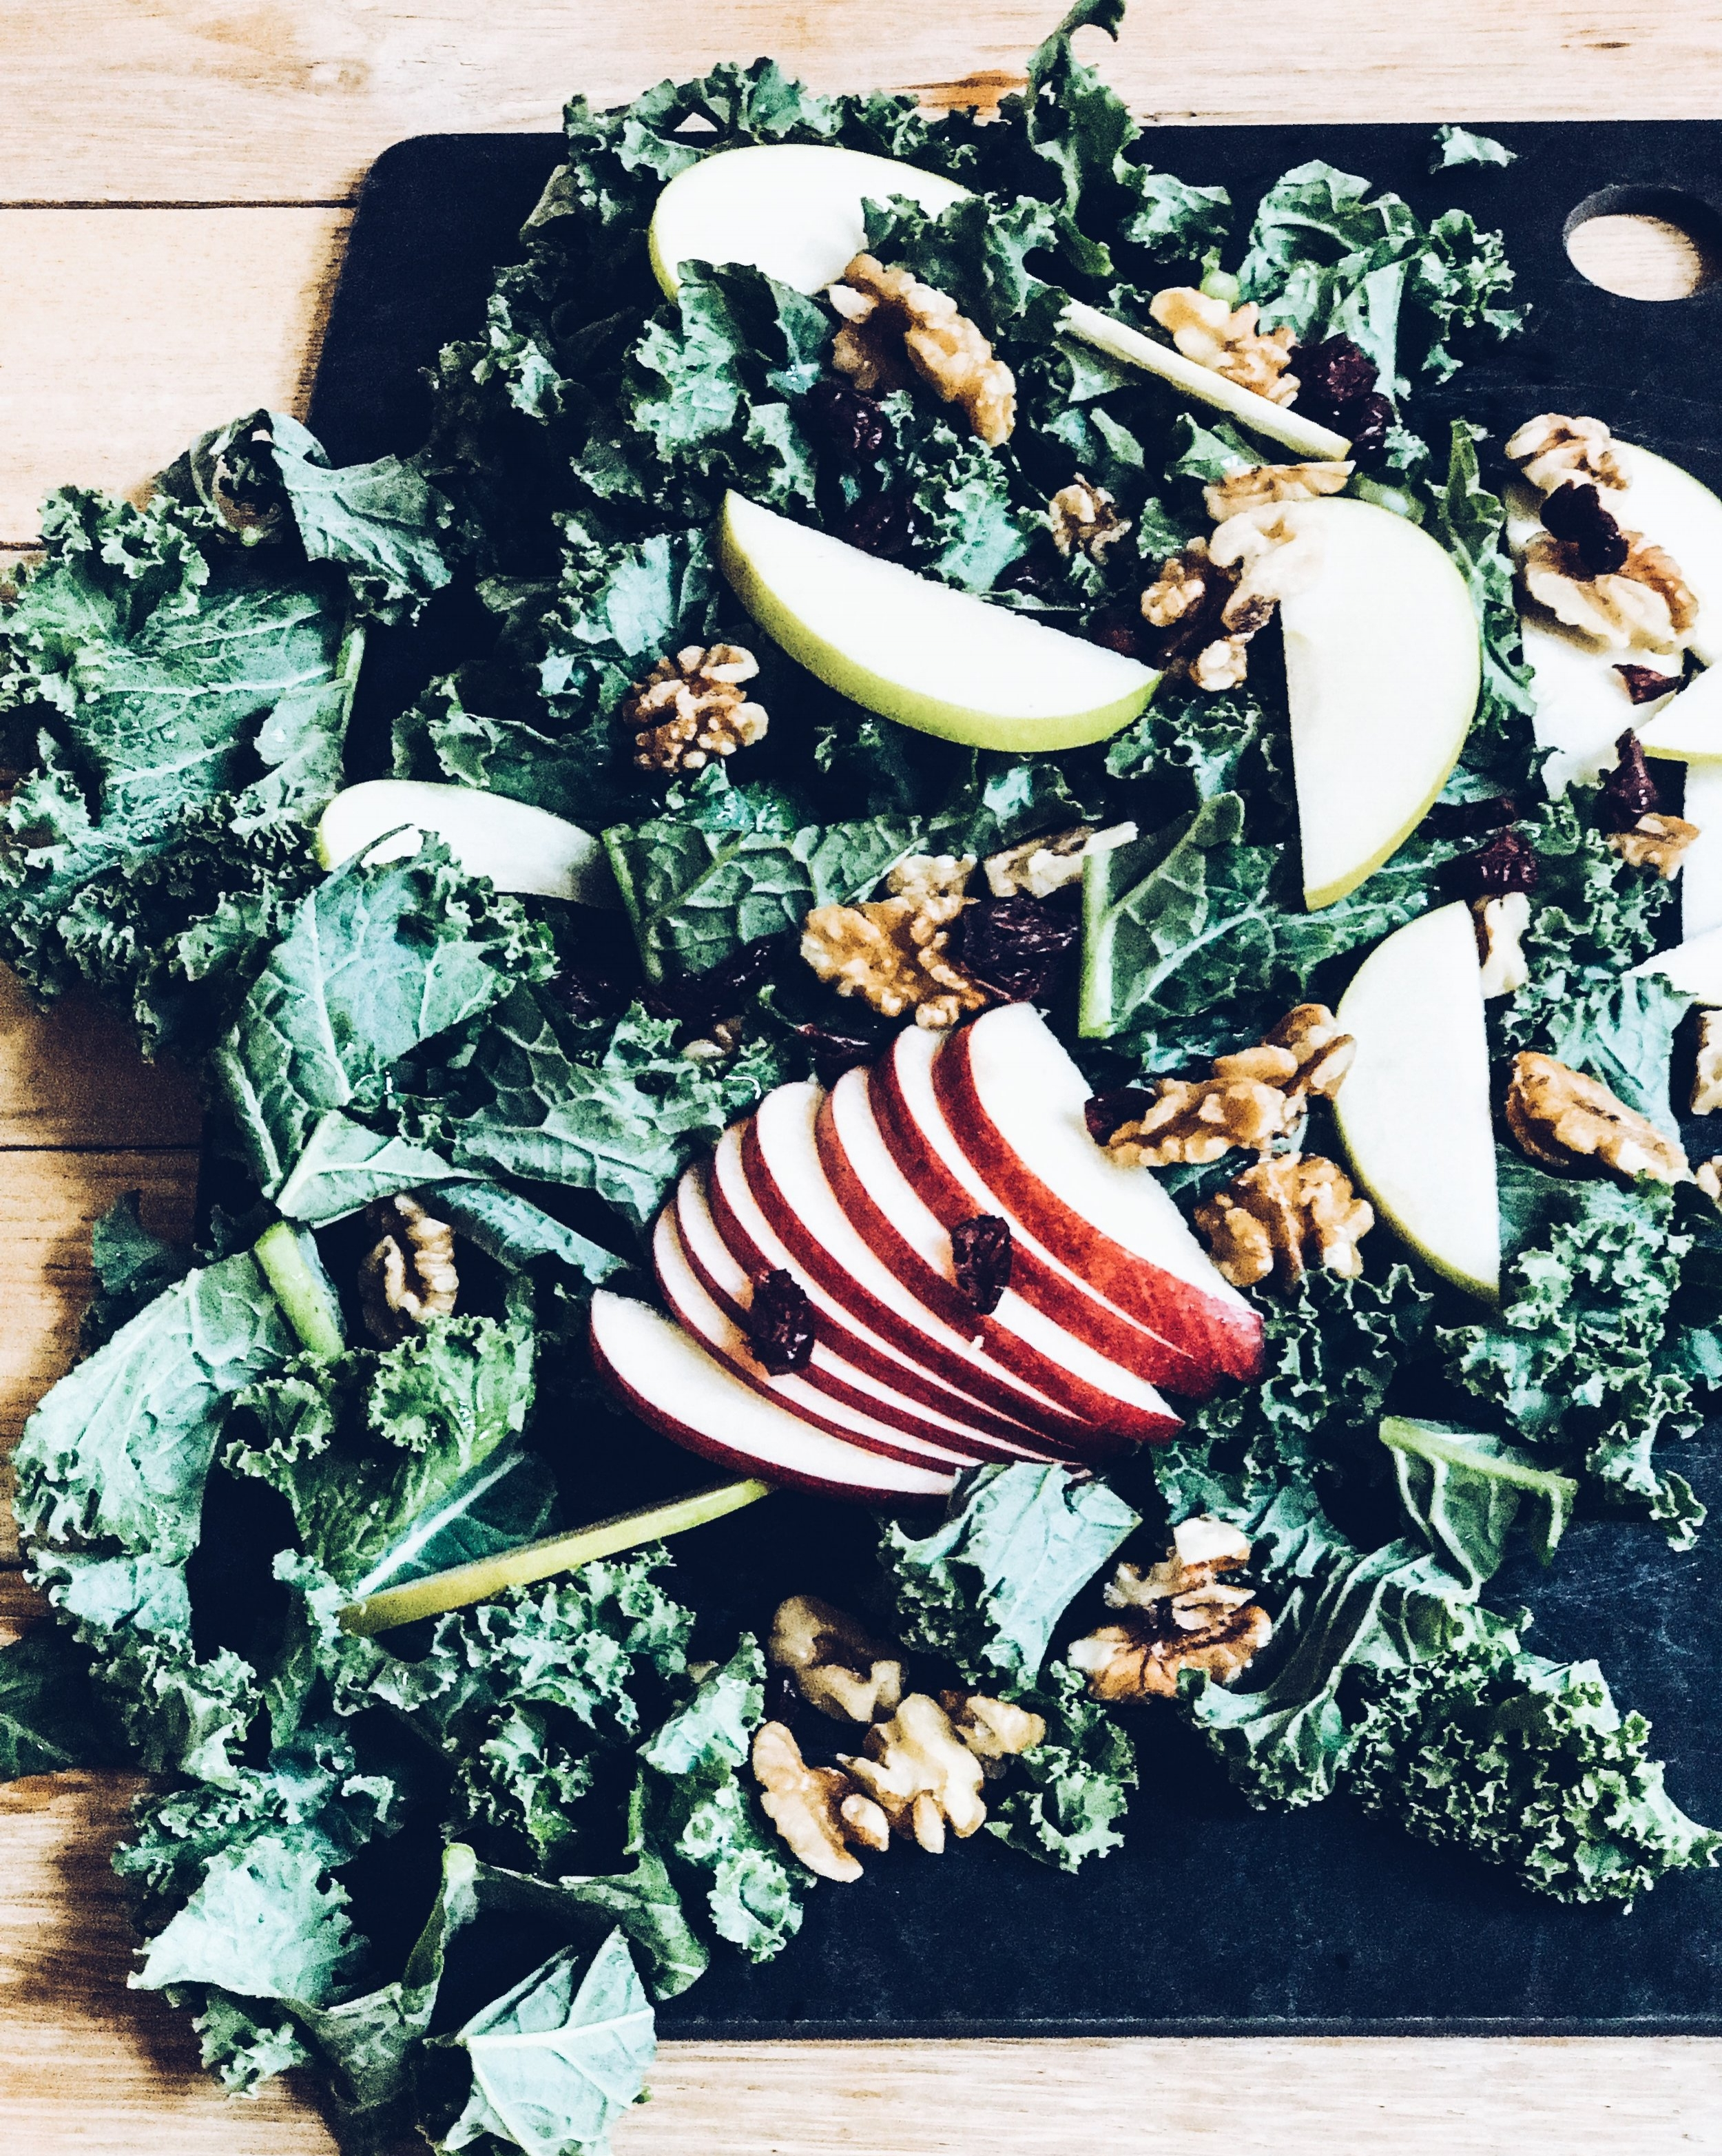 Tuscan Kale and Apple Salad. Oprah Cookbook: Food, Health, and Happiness.